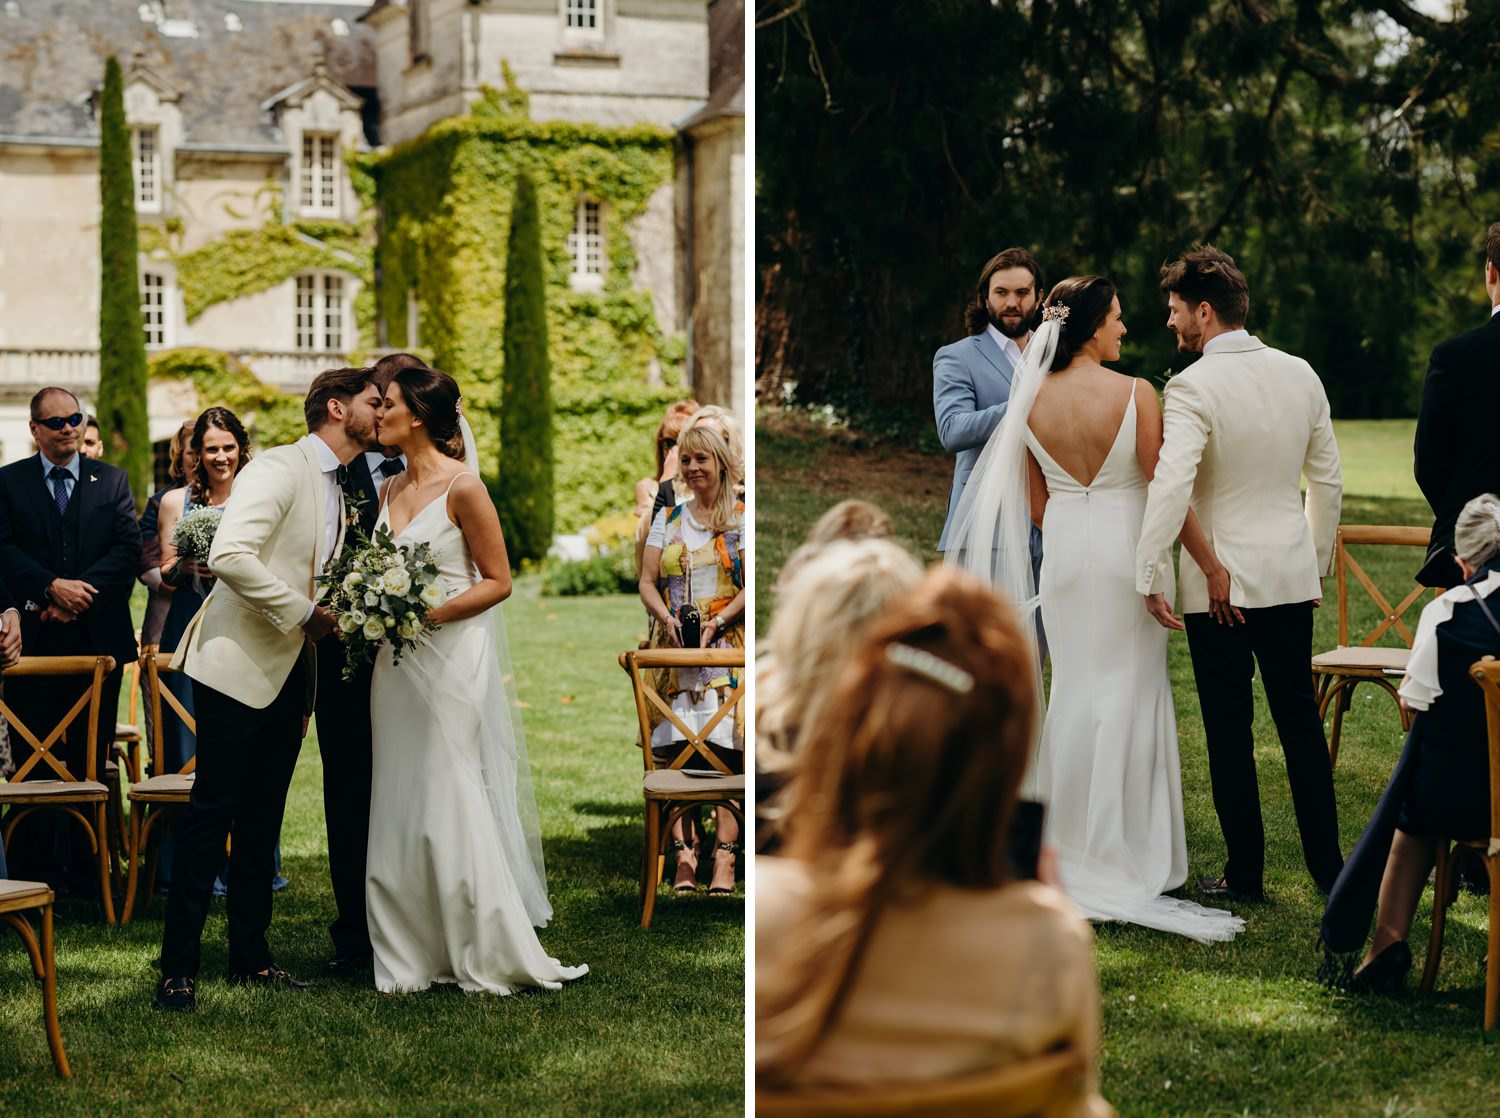 Le mas de montet wedding photographer 034